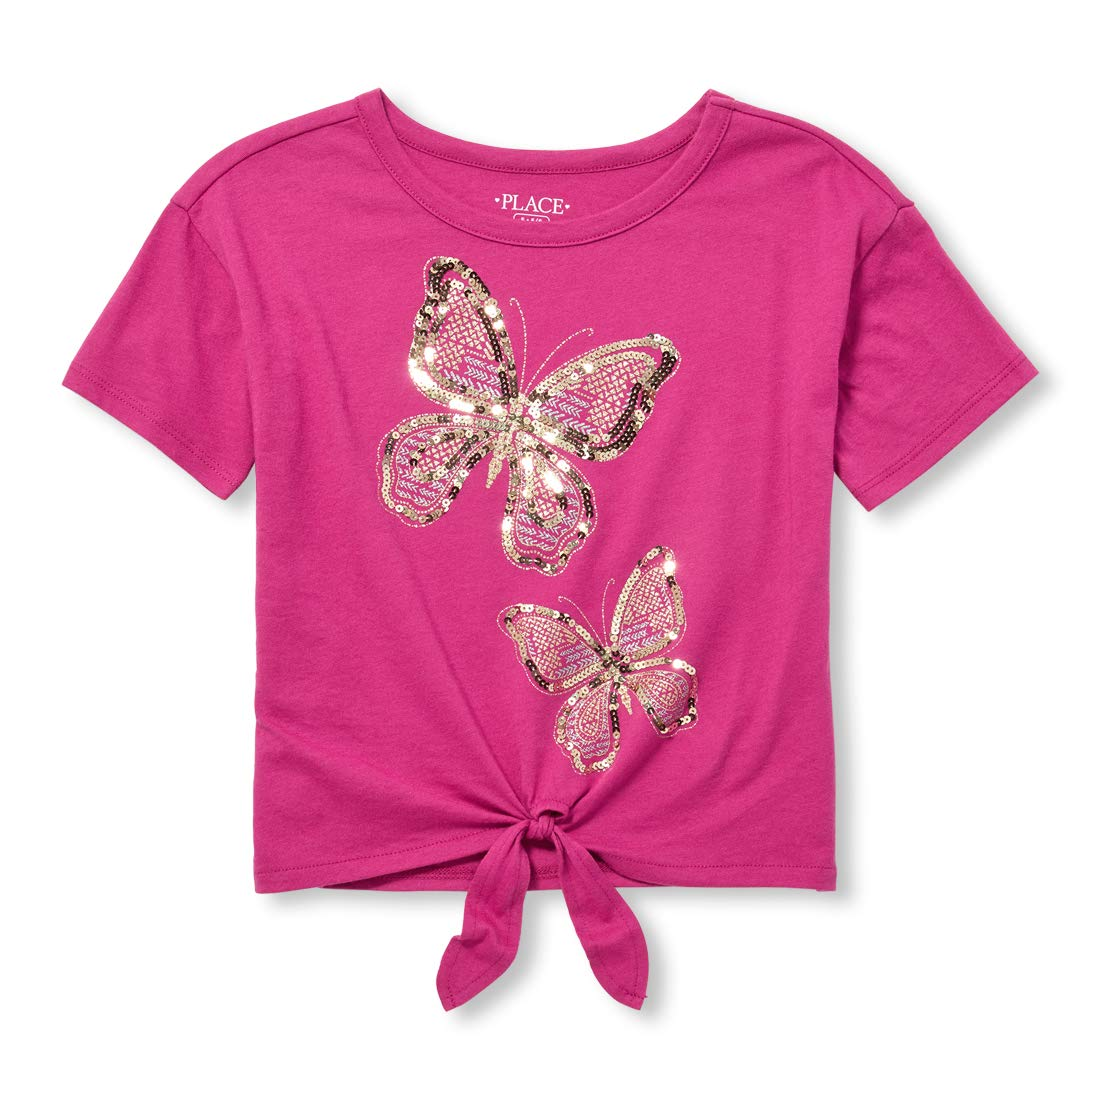 The Children's Place Big Girls Short Sleeve Graphic Tops The Children' s Place